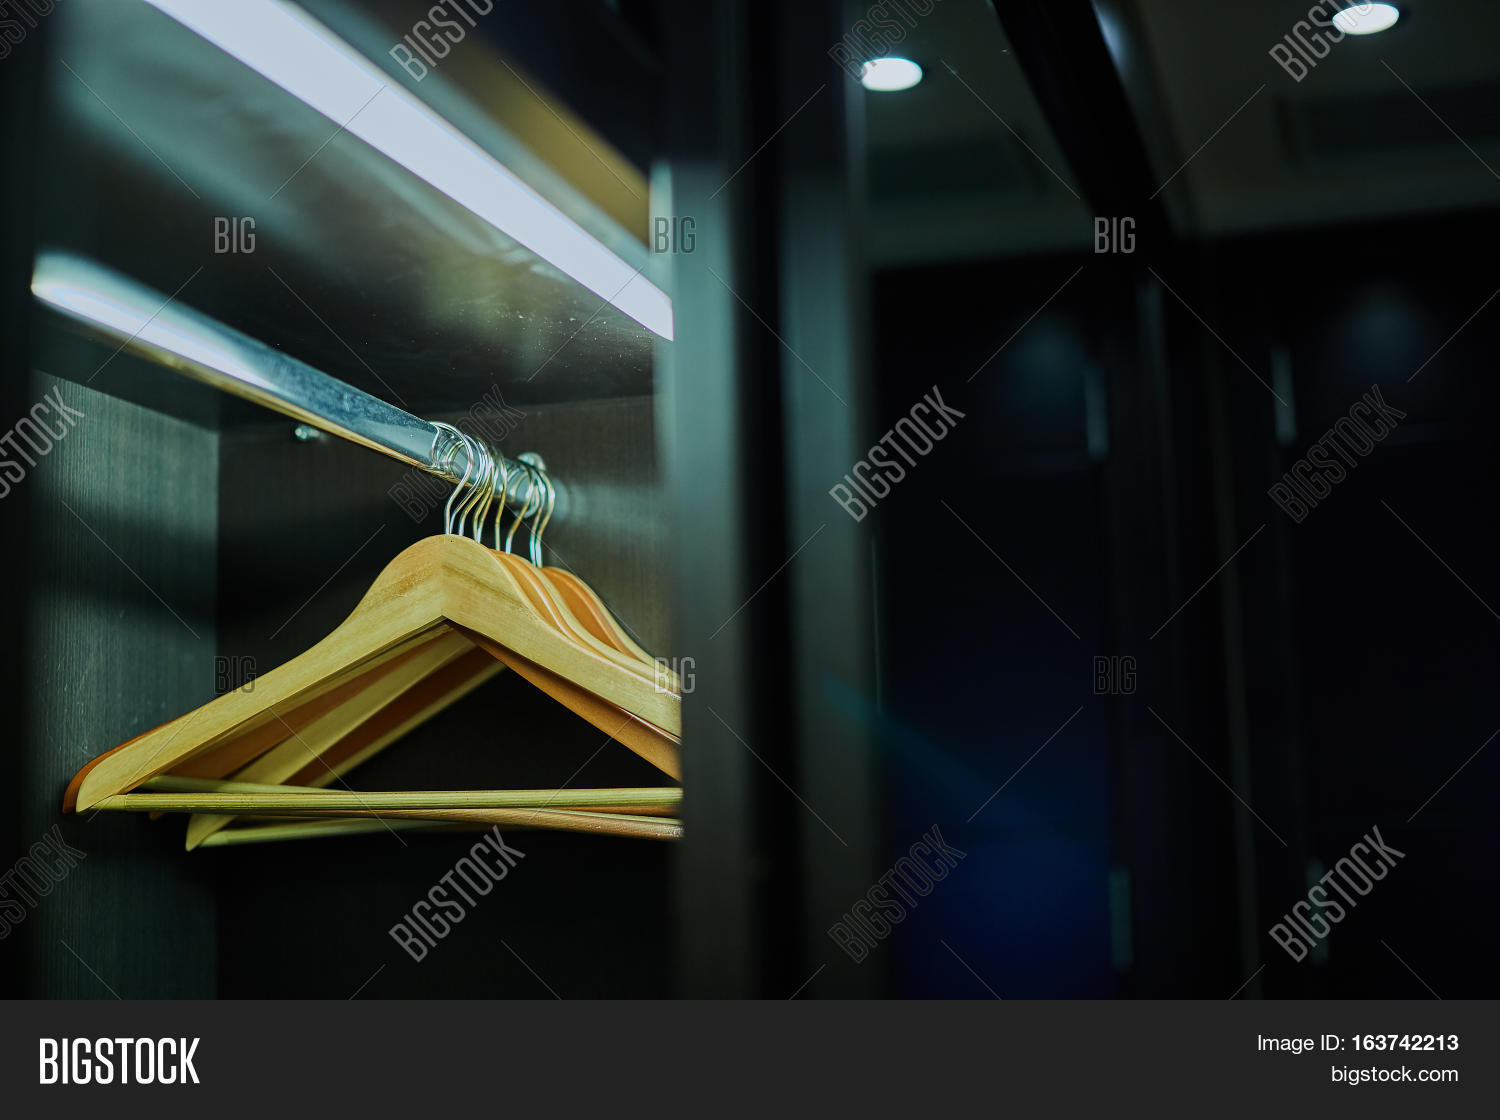 Dark in closet Man Cave Background Boutique Brown Cloakroom Closet Closeup Cloth Clothes Clothing Concept Dark Domestic Dress Empty Equipment Fashion Hanger Holder Hook Luxury Better Homes And Gardens Background Boutique Image Photo free Trial Bigstock